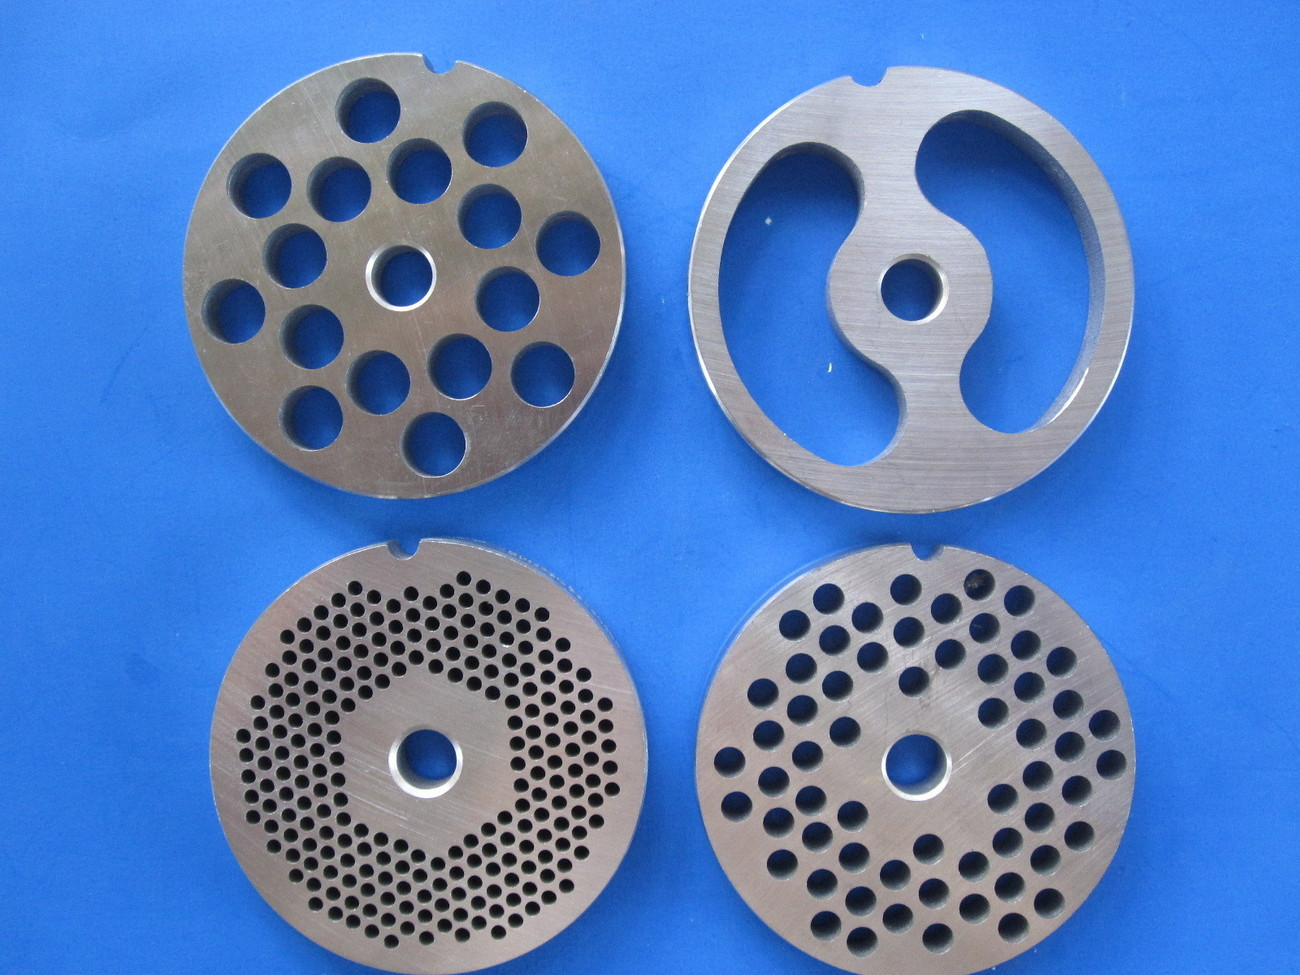 #22 4 pc SET Meat Grinding plates discs Sausage Kidney disc for Hobart Torrey 22